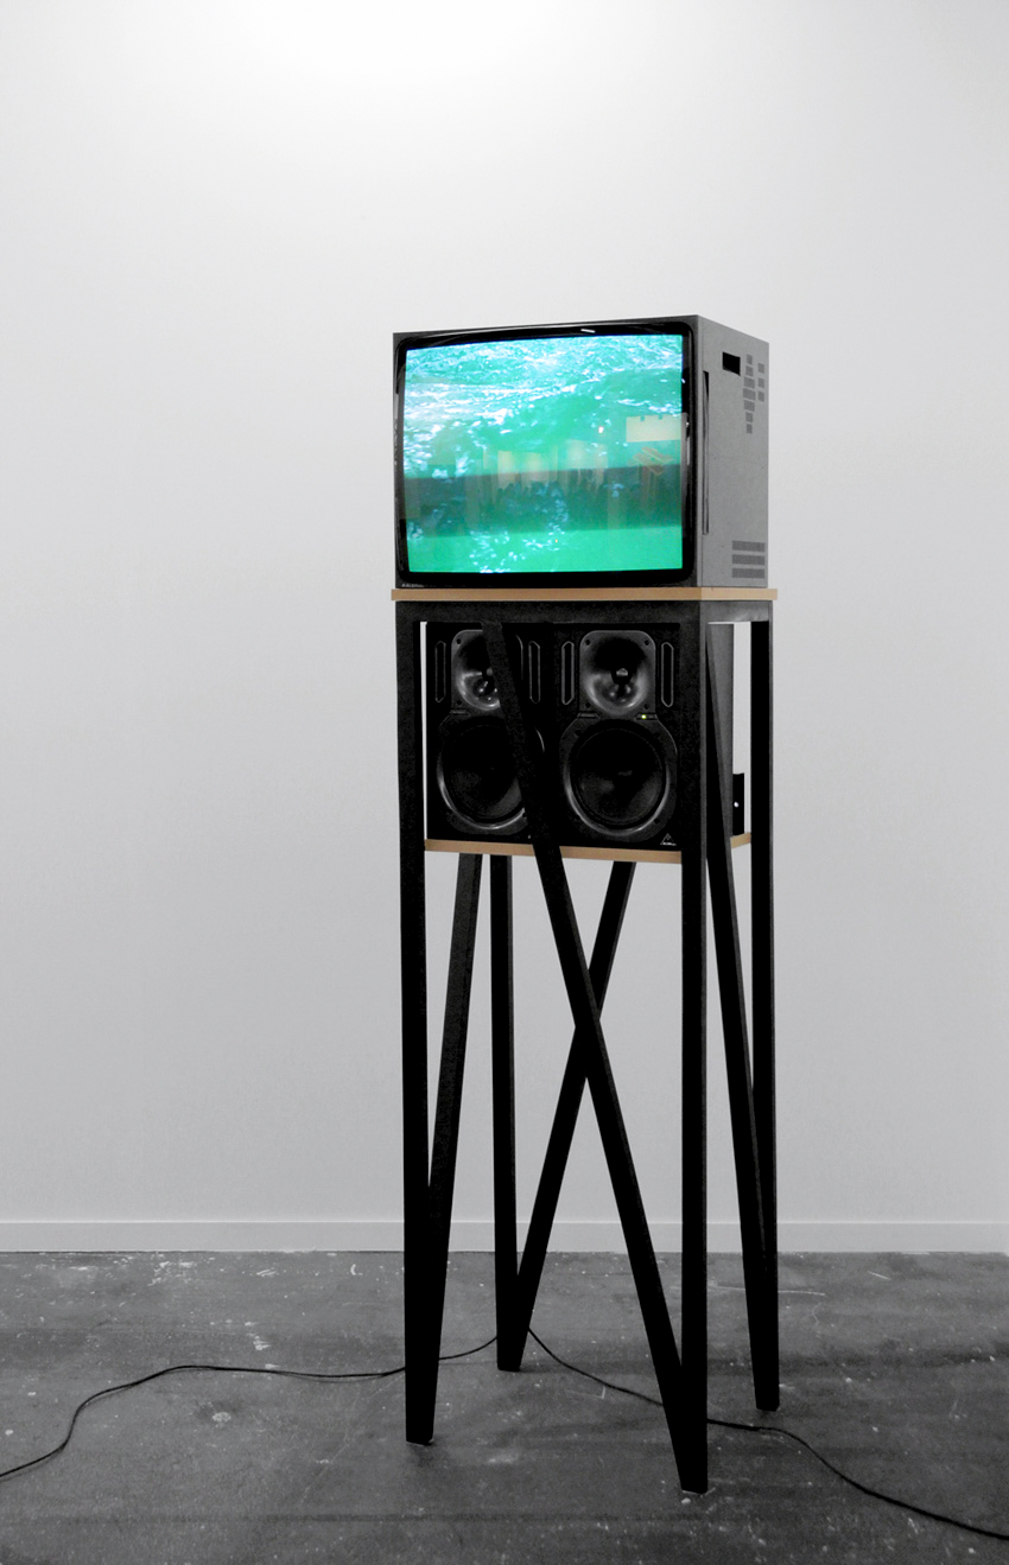 David ferrando Giraut, MF (Anthem), 2013. Digital video with sound in CRT monitor, active speakers, wood and MDF.